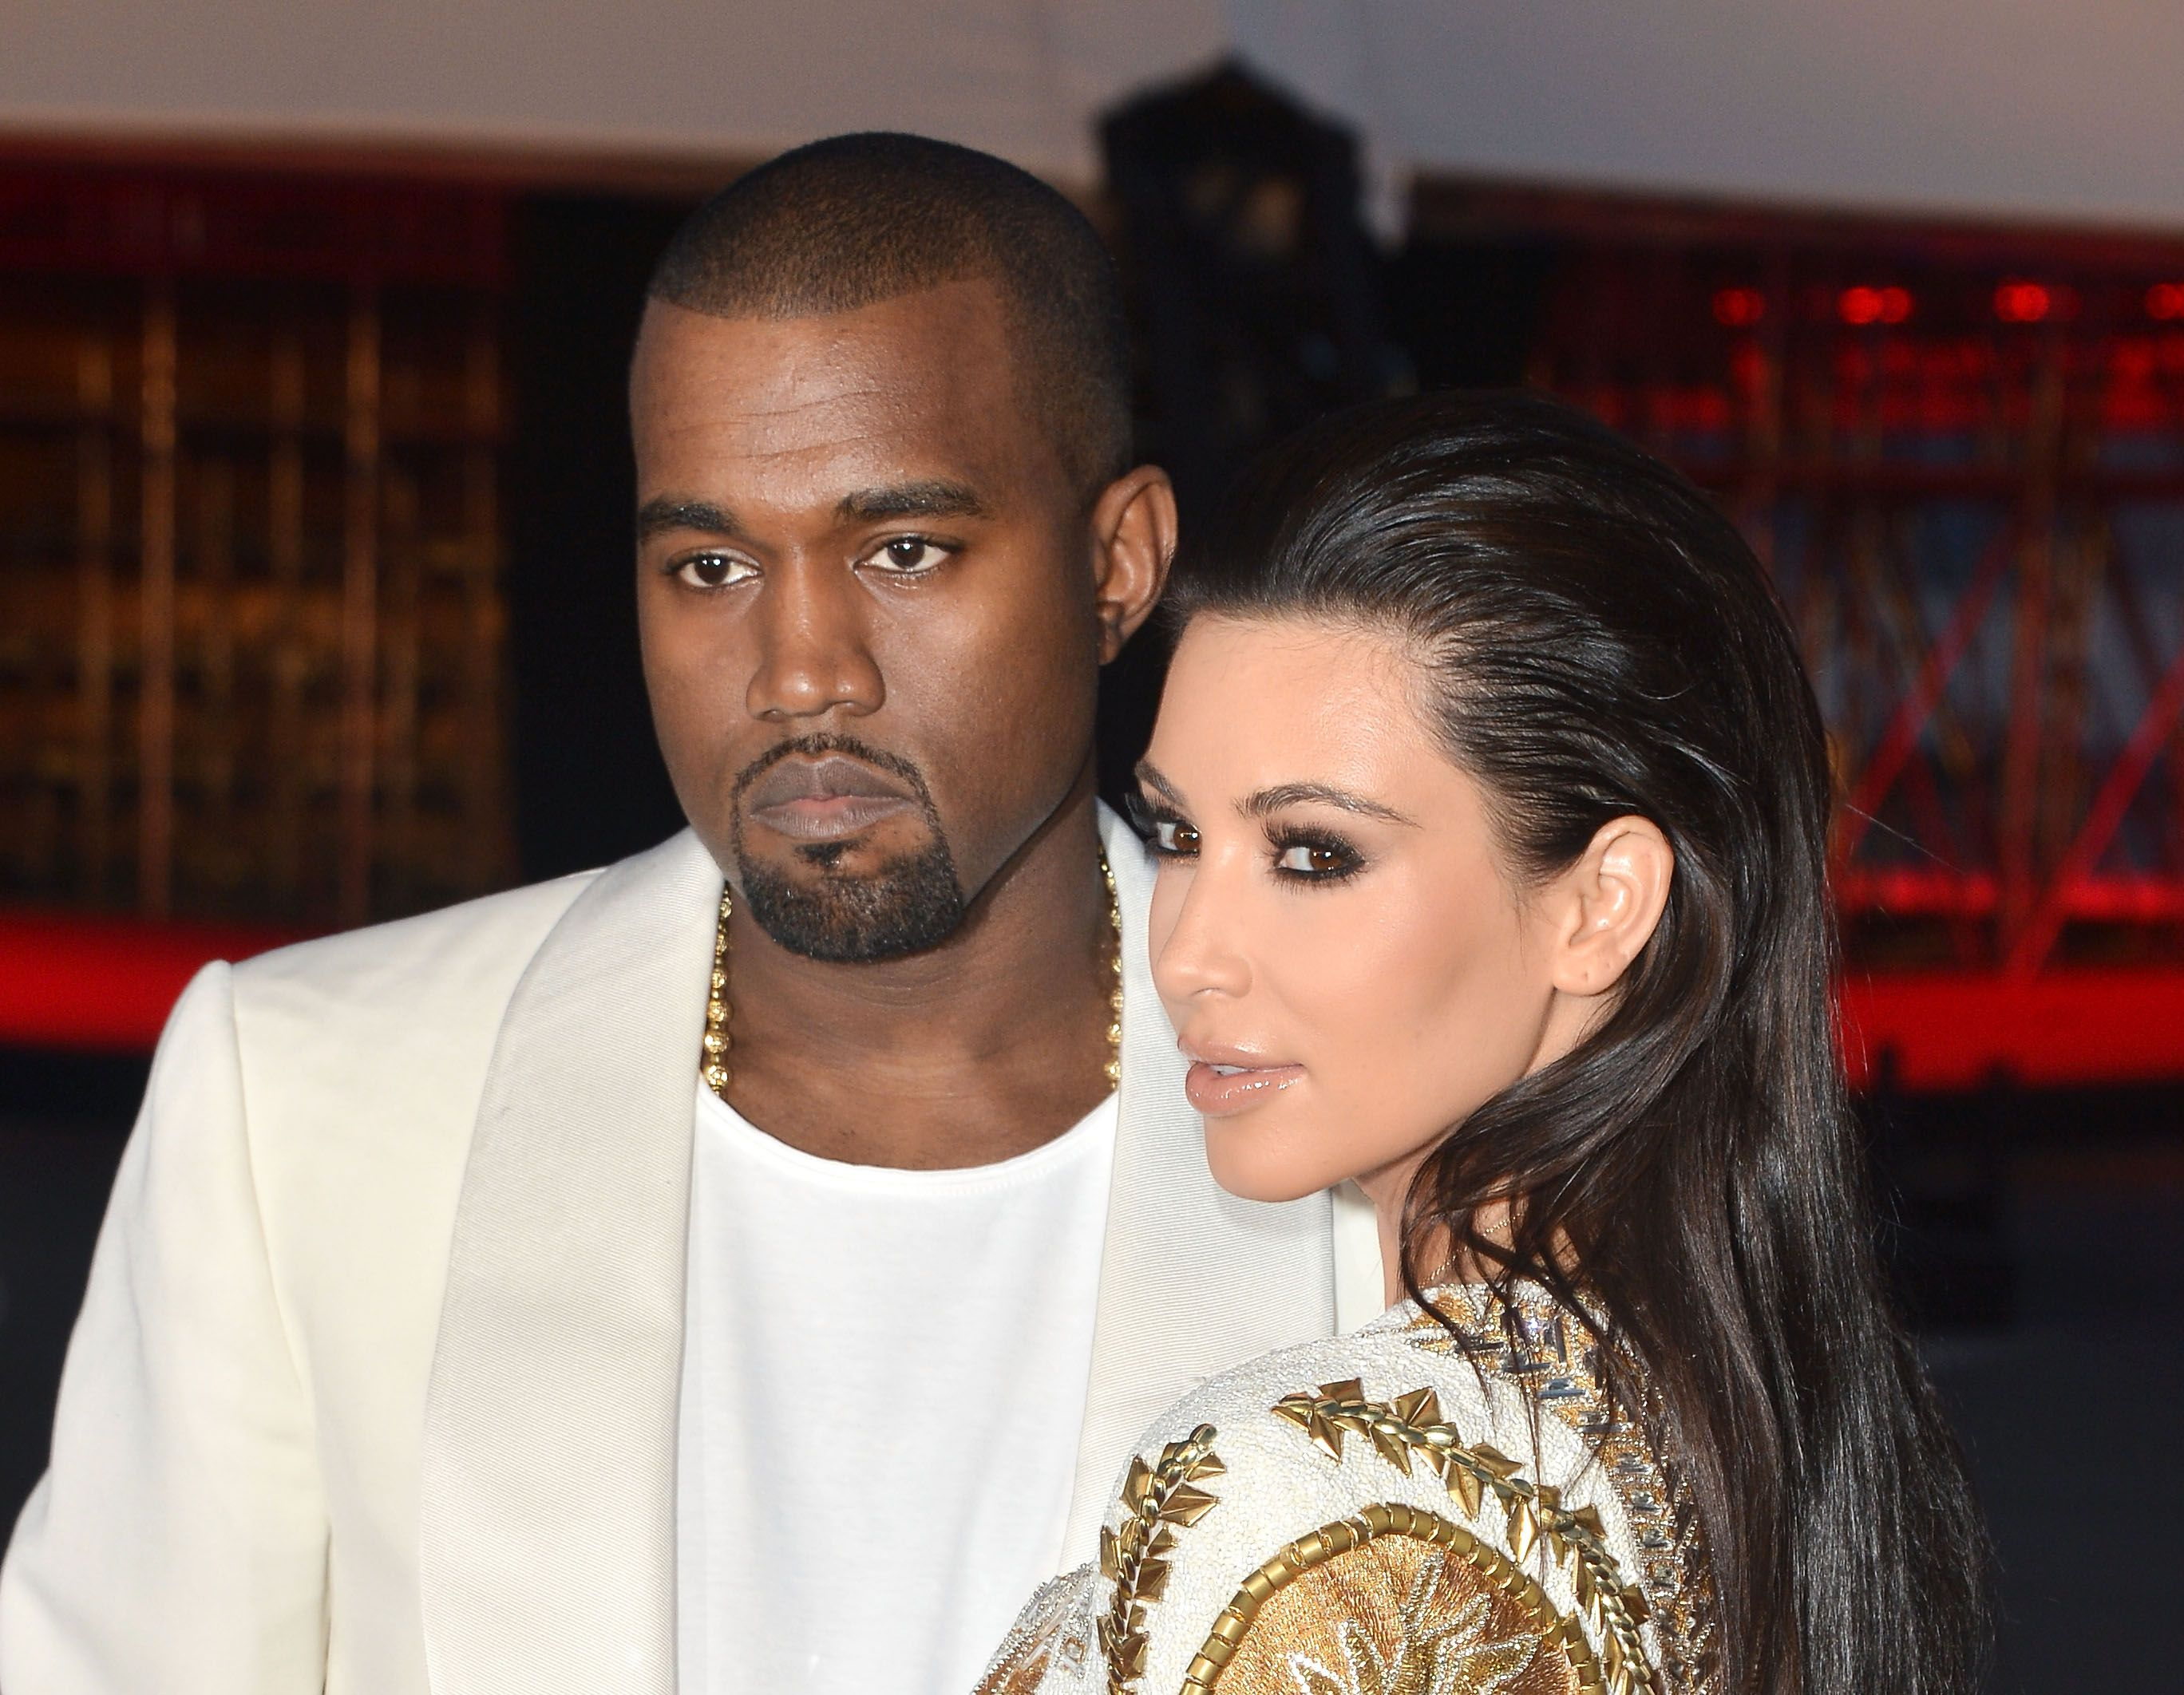 """Kanye West and Kim Kardashian at the """"Cruel Summer"""" premiere during the 65th Annual Cannes Film Festival at Palm Beach on May 23, 2012, in Cannes, France   Photo: Getty Images"""